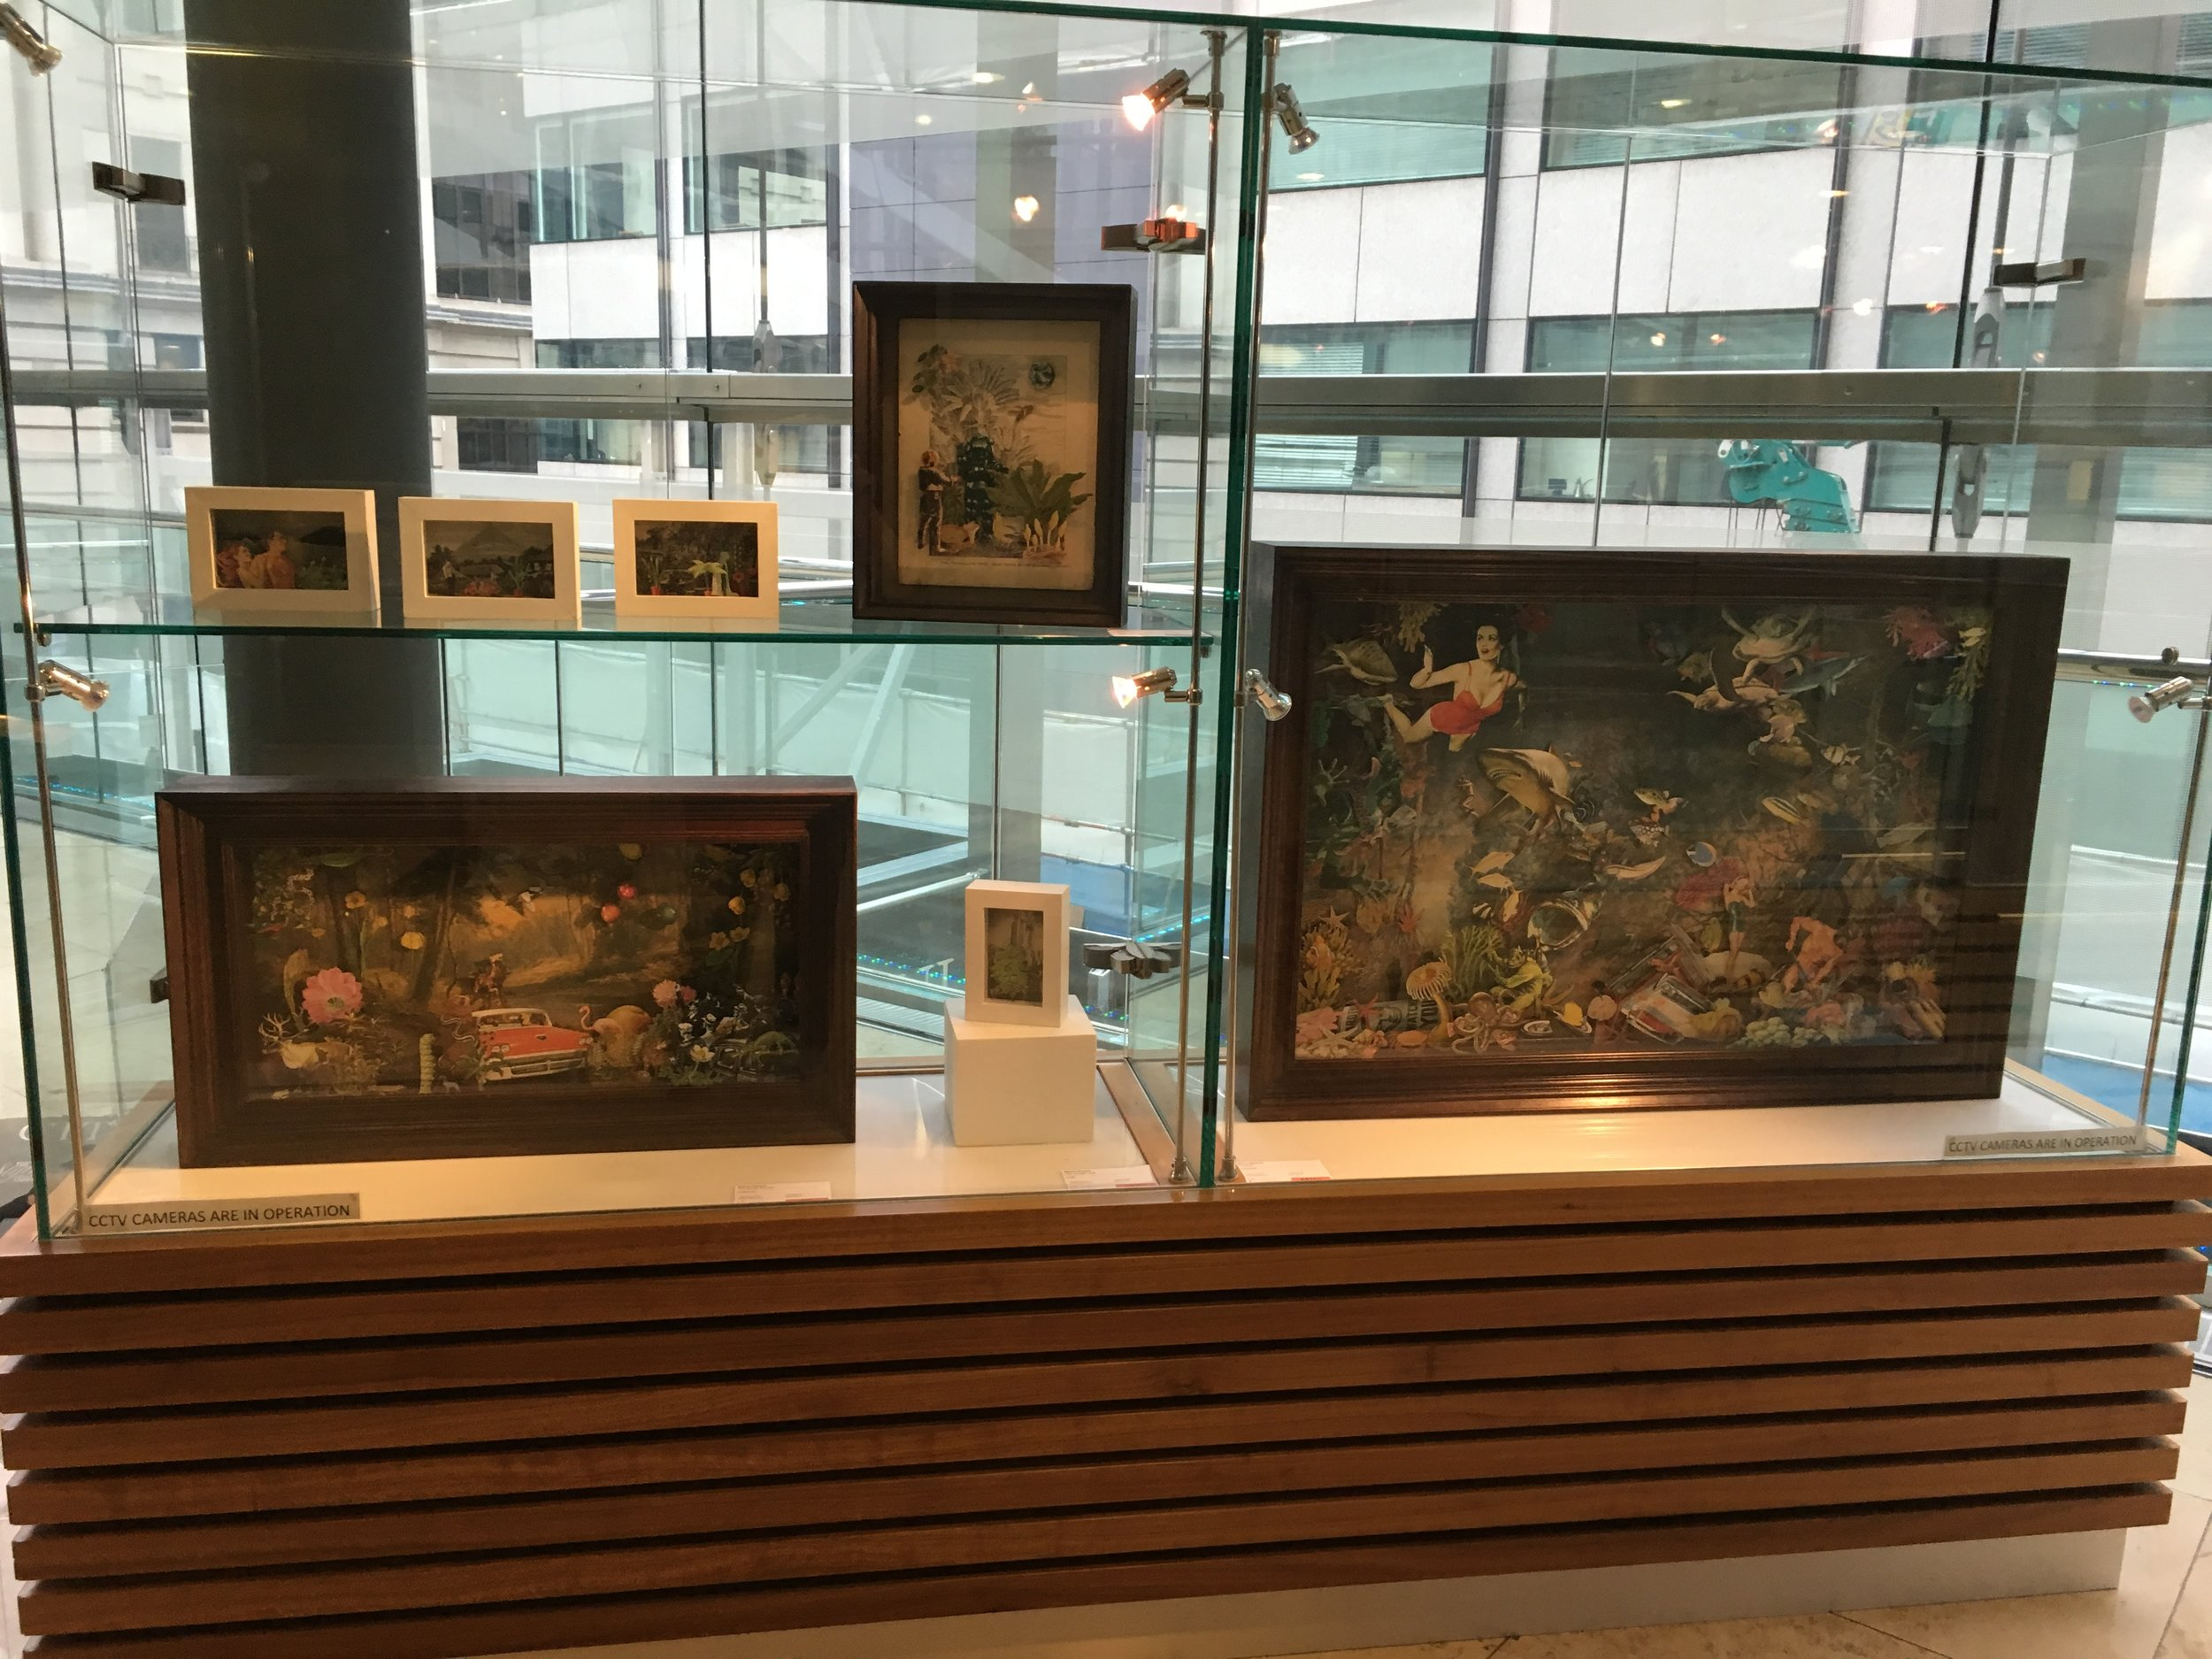 Display case at the top of the escalators featuring Maria Rivans' original collages in bespoke 3D boxes.